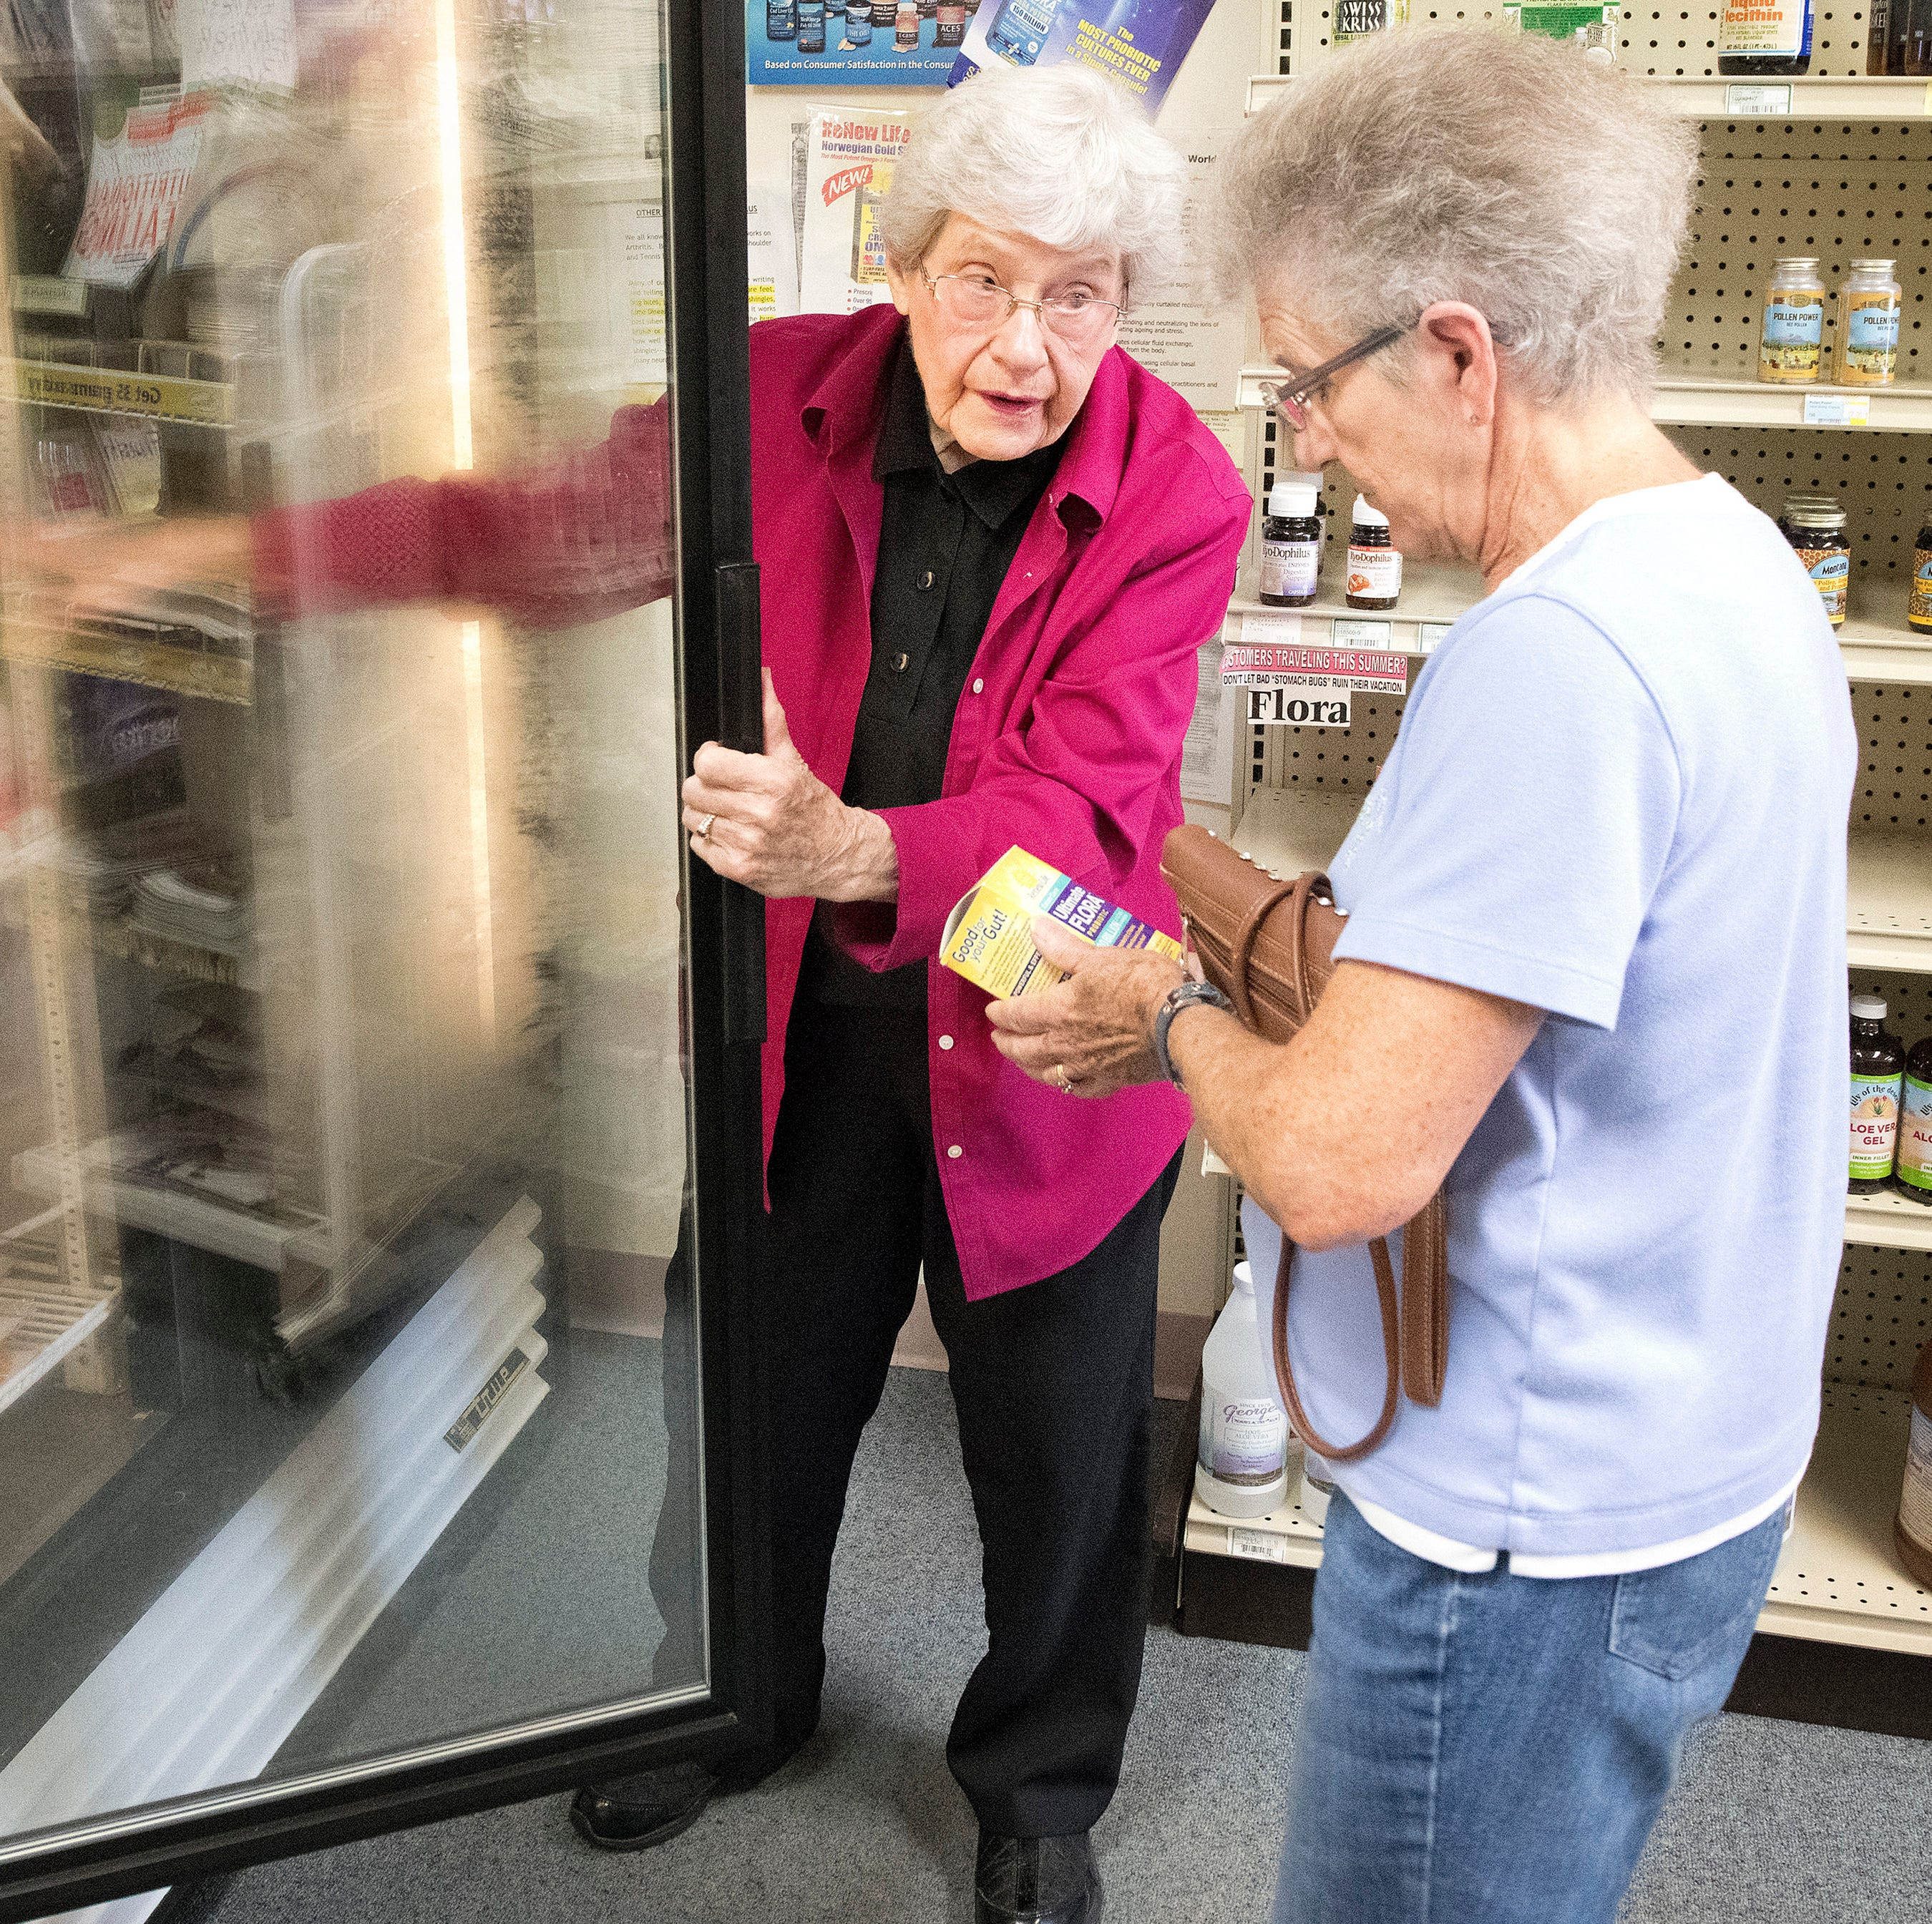 Sioux City woman, 95, retires after an 80-year career in retail